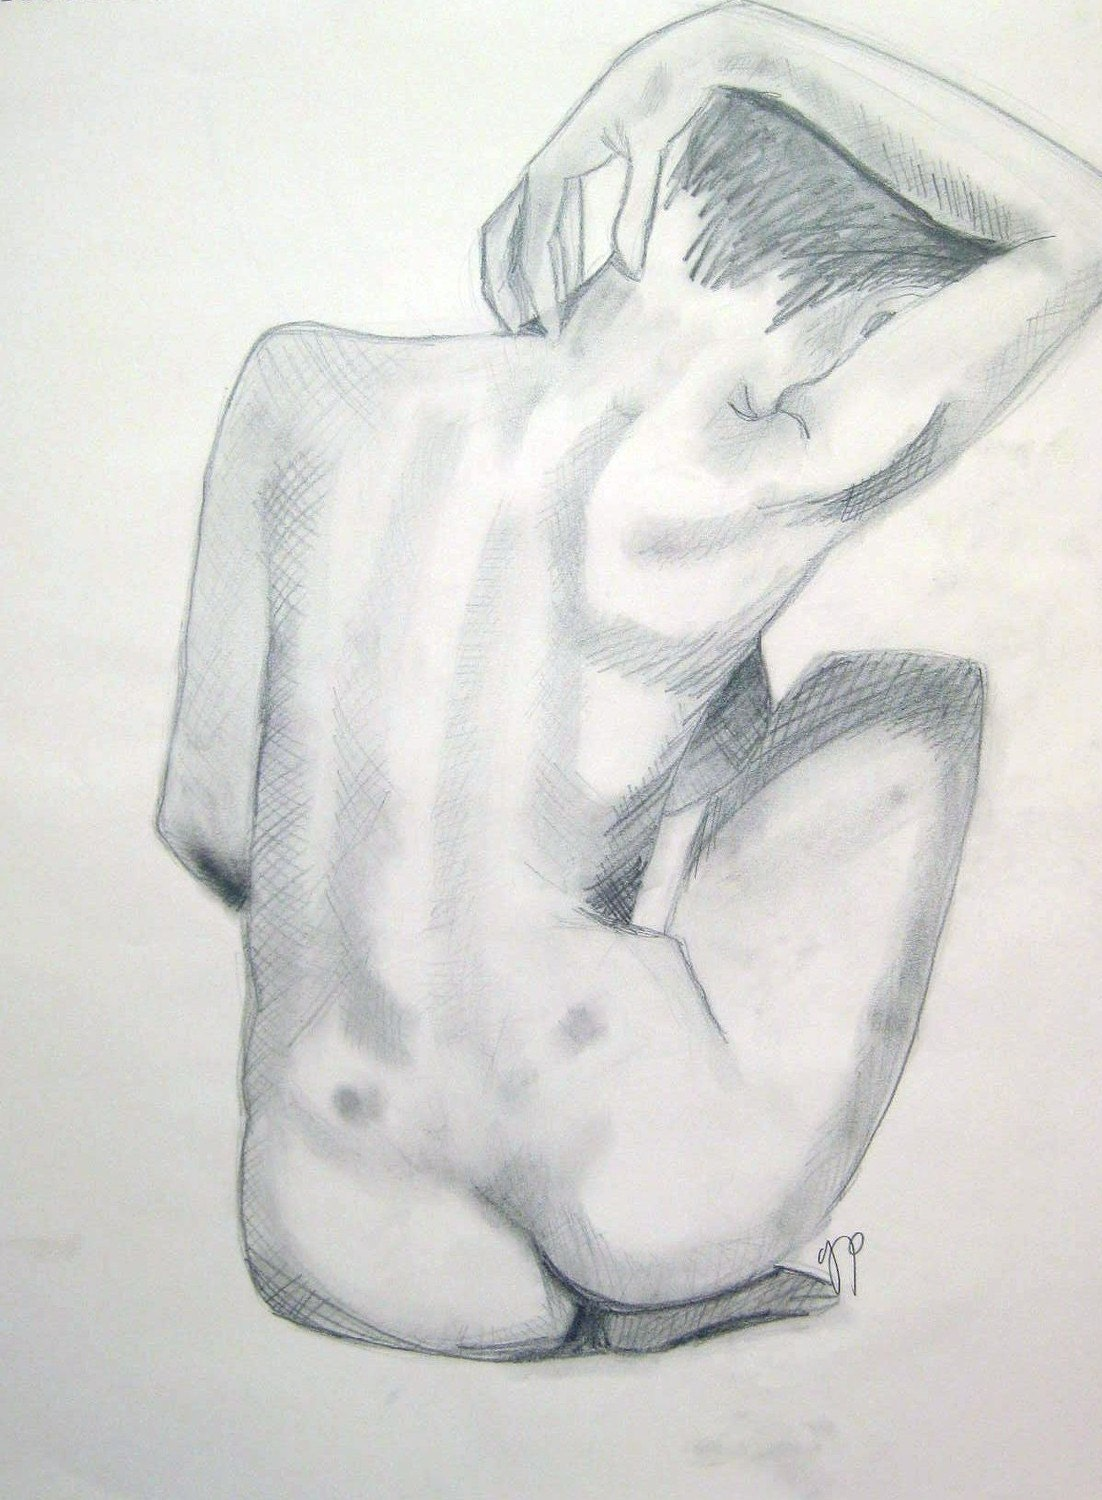 Nude pencil drawings xxx sexy scene